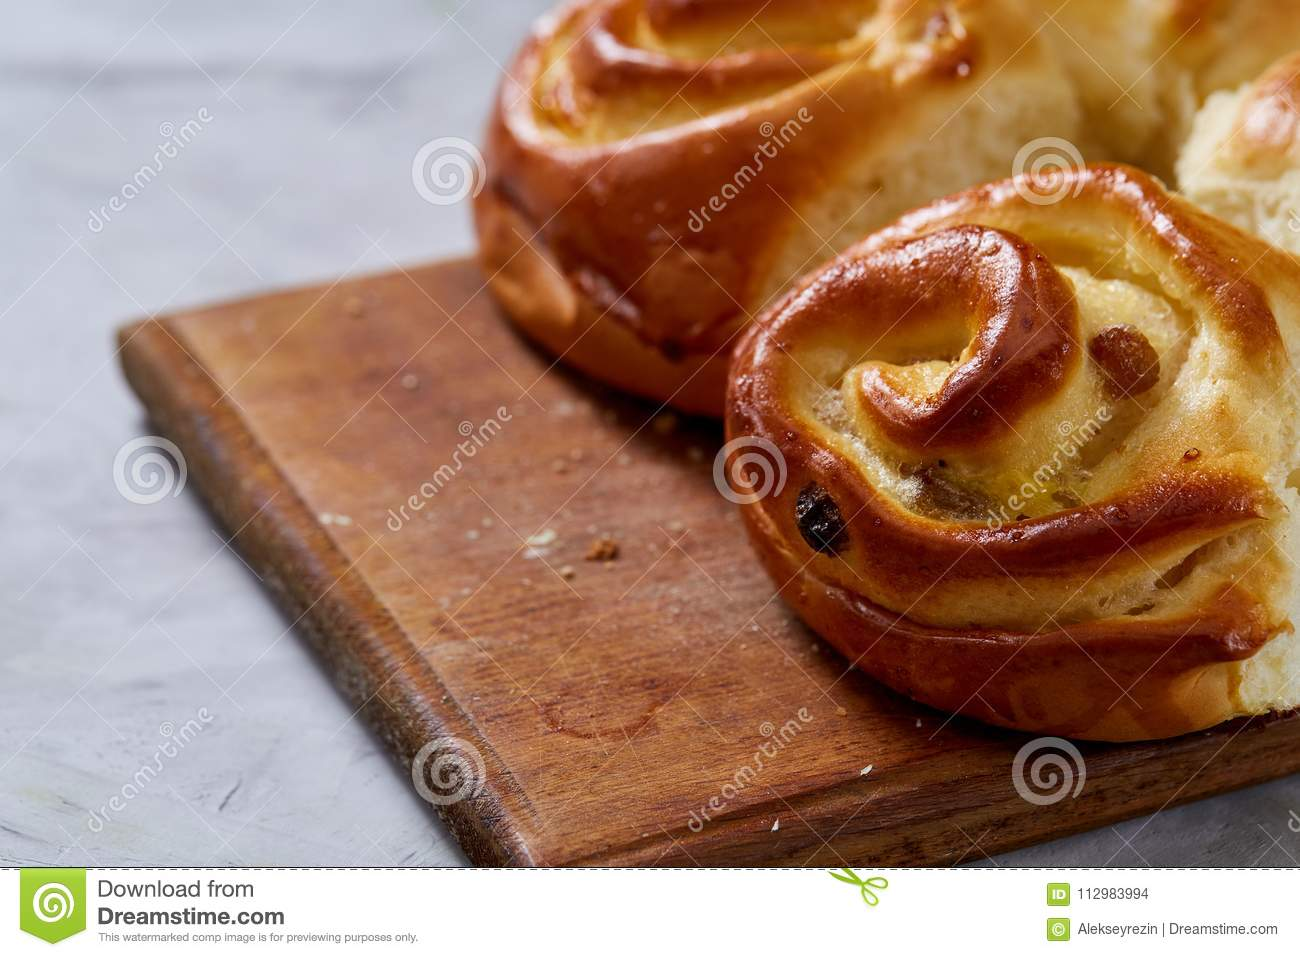 Homemade rose buns on wooden cutting board over white textured background, close-up, shallow depth of field